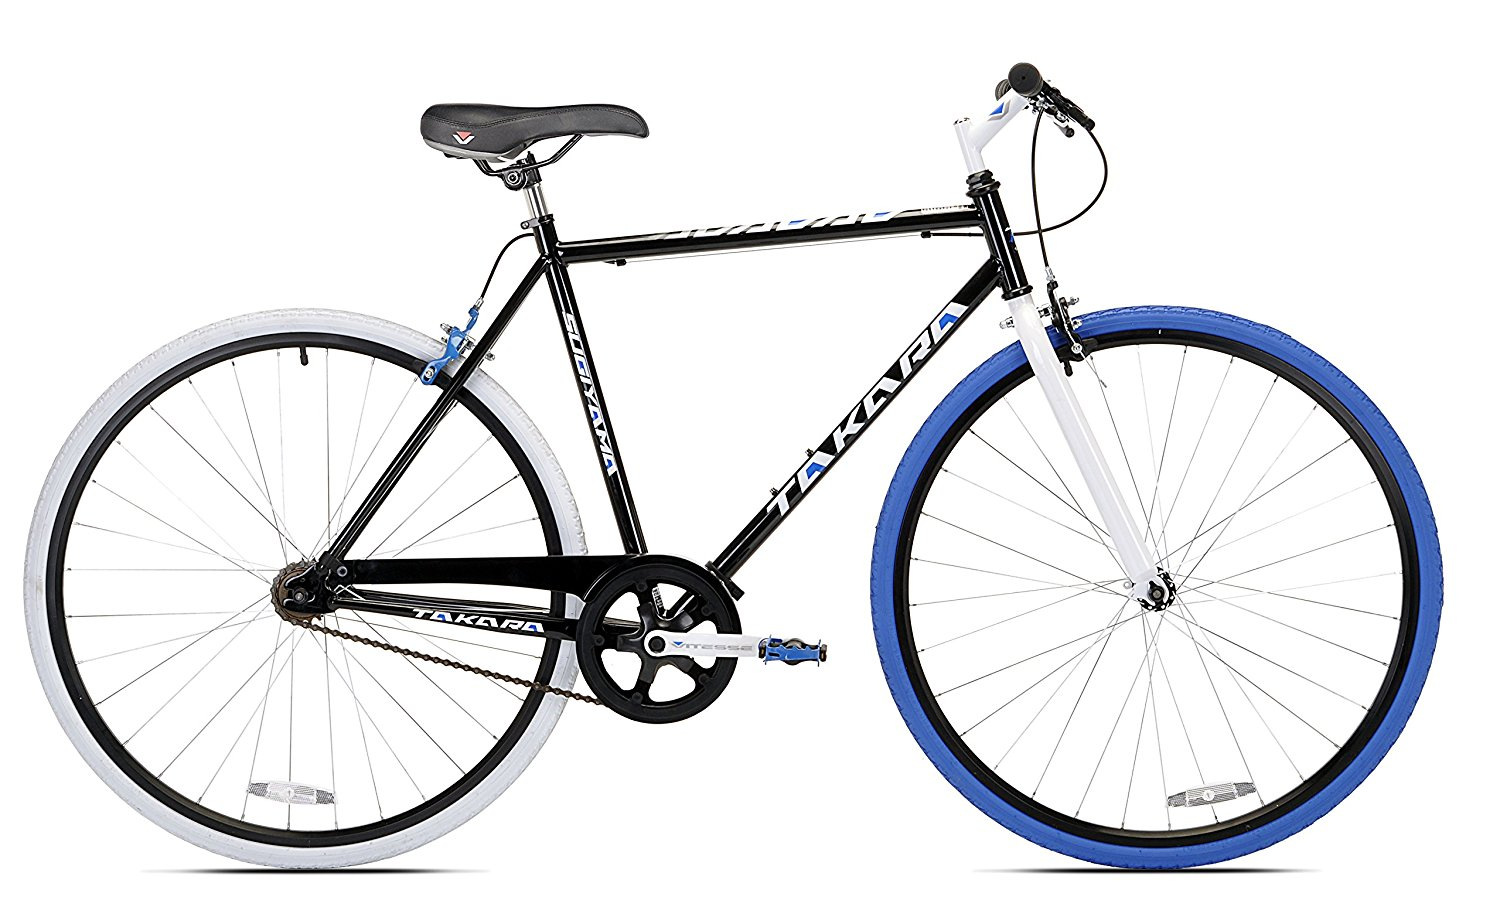 Takara Sugiyama Flat Bar Fixie Bike review